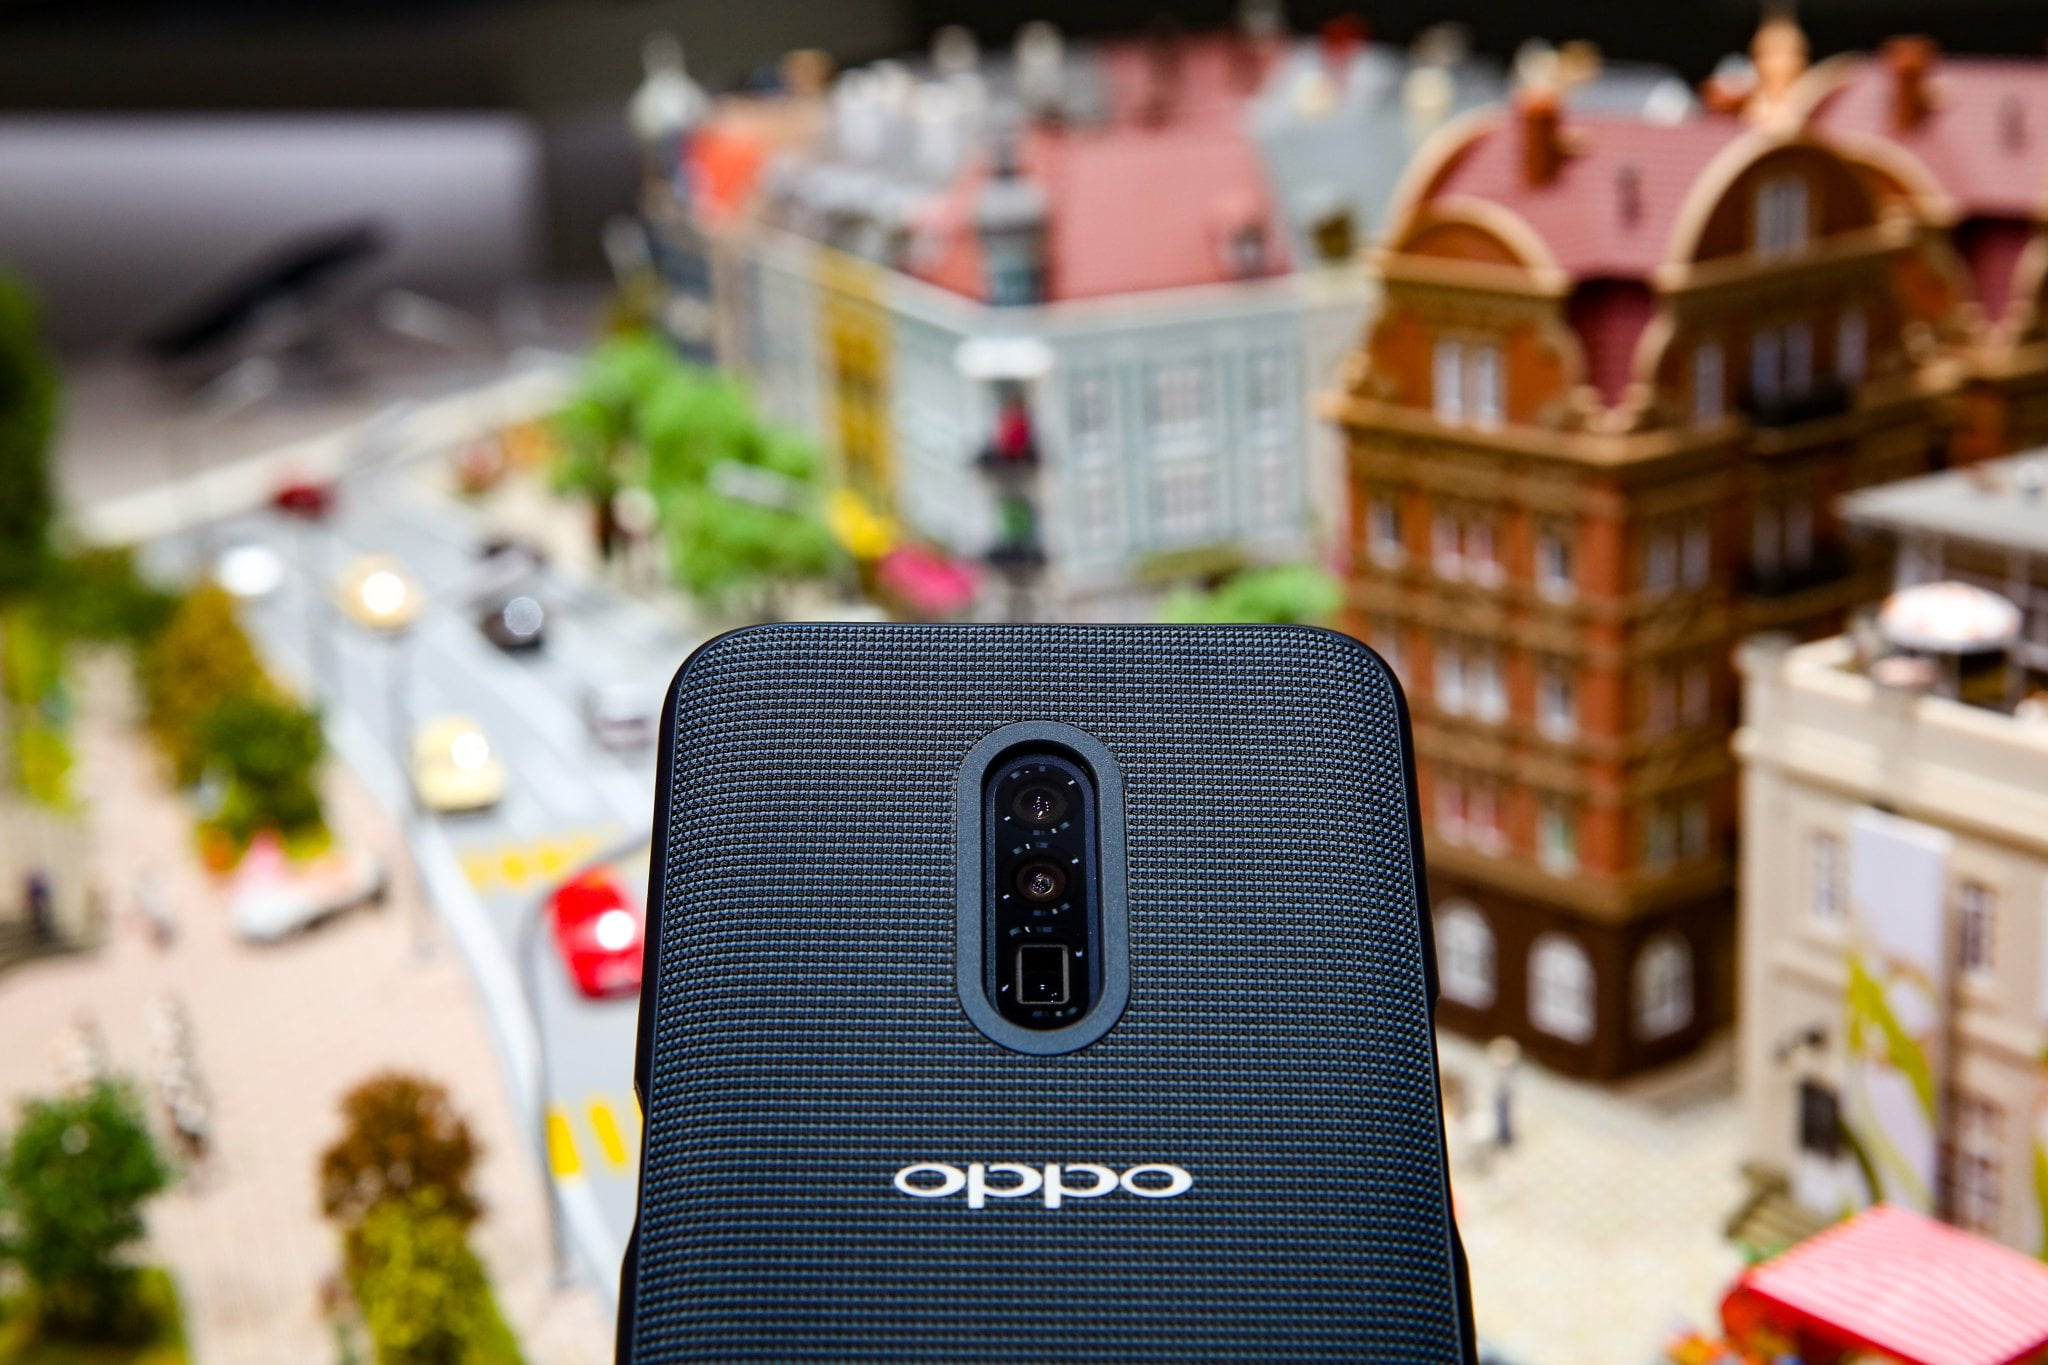 A picture of Oppo's 10X Zoom camera in their smartphone at MWC Barcelona 2019